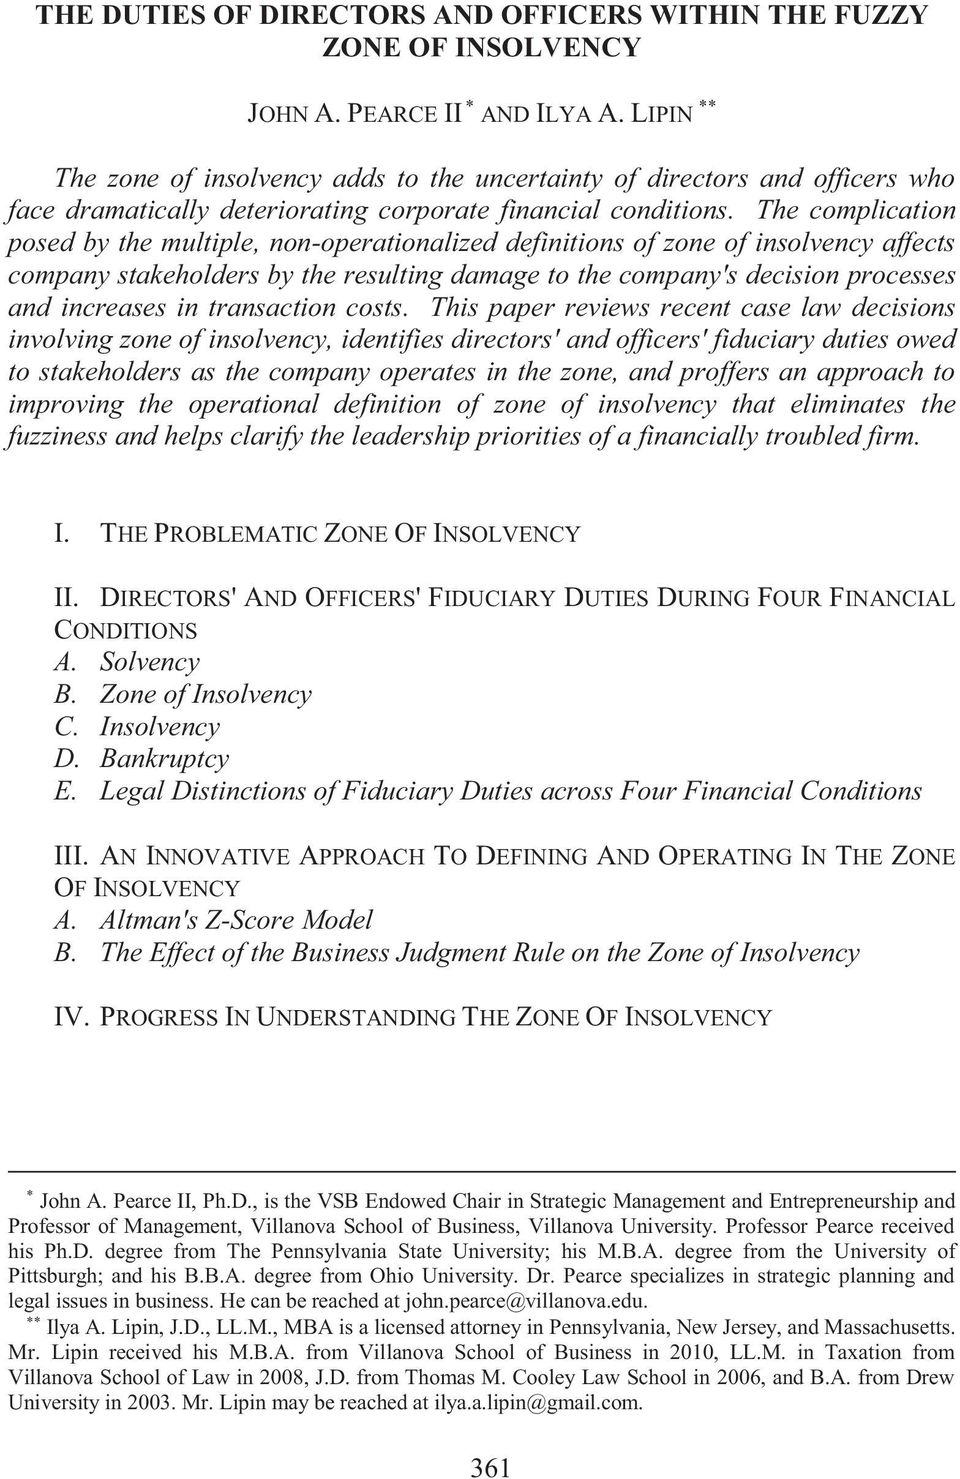 The complication posed by the multiple, non-operationalized definitions of zone of insolvency affects company stakeholders by the resulting damage to the company's decision processes and increases in